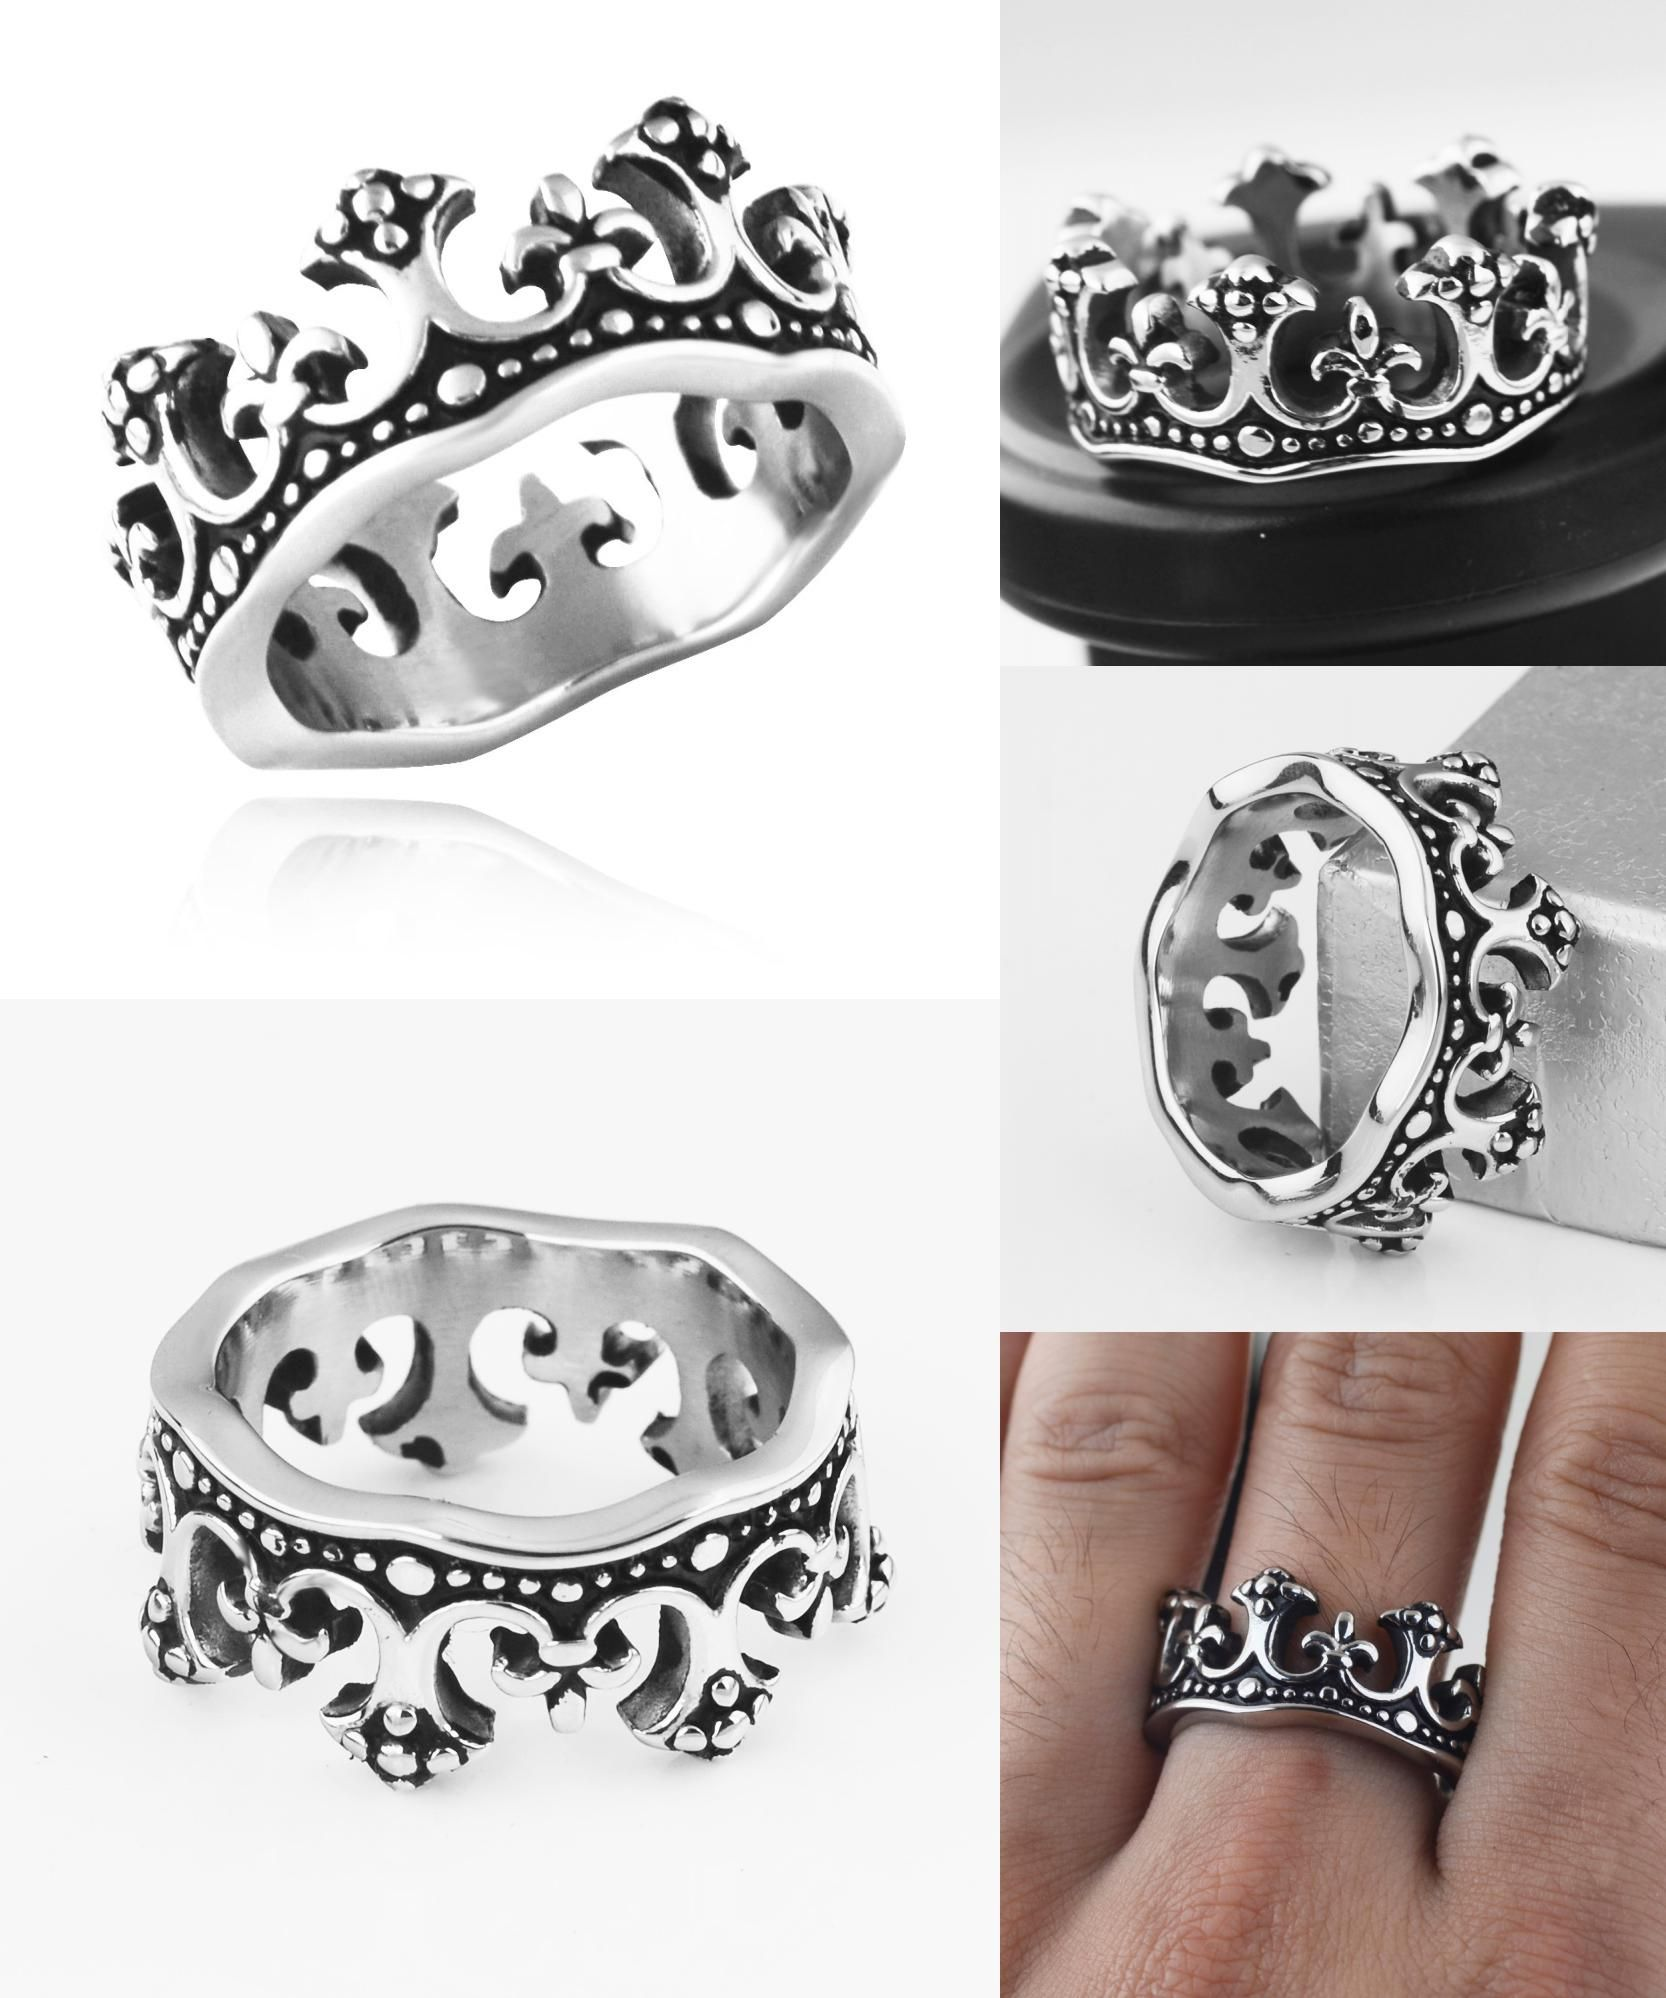 Visit To Buy Valily Jewelry Men Ring Quality The King Crown Stainless Steel: Wedding Ring Art Deco Adver At Reisefeber.org